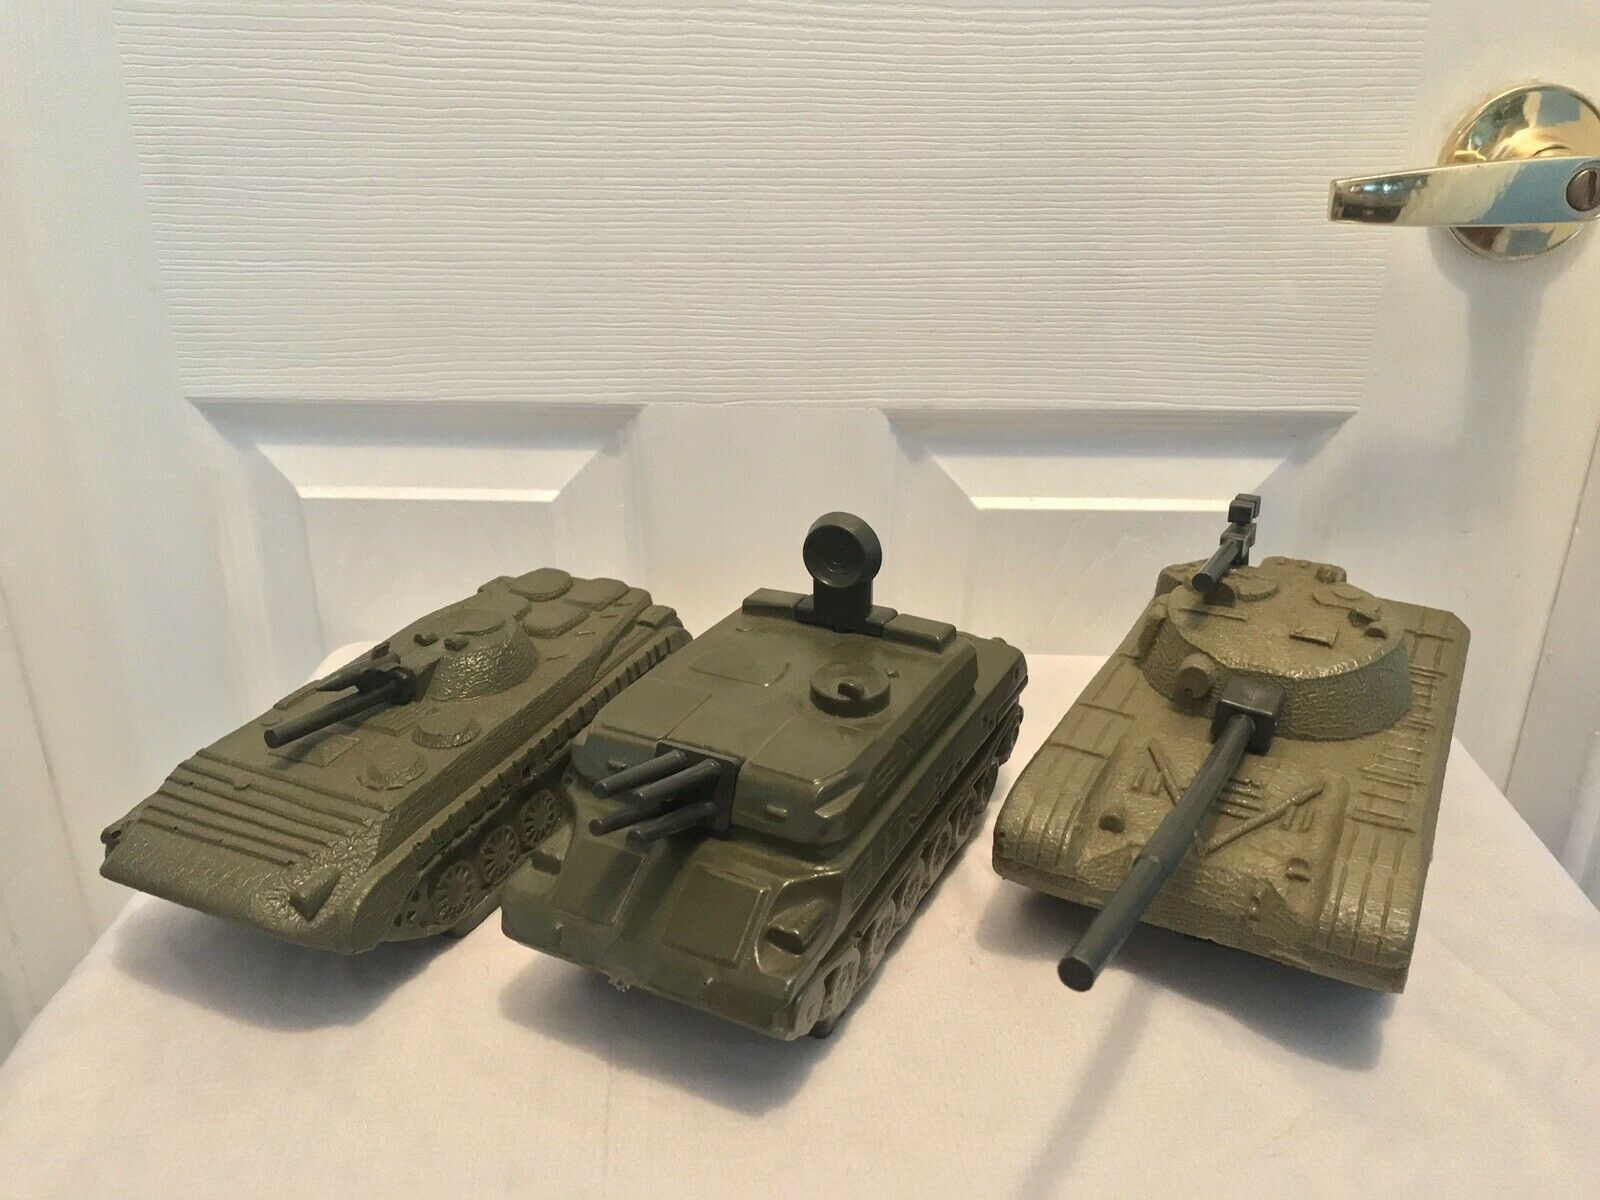 Lot of 3 Vintage Toy Military Tank Mold Prototypes